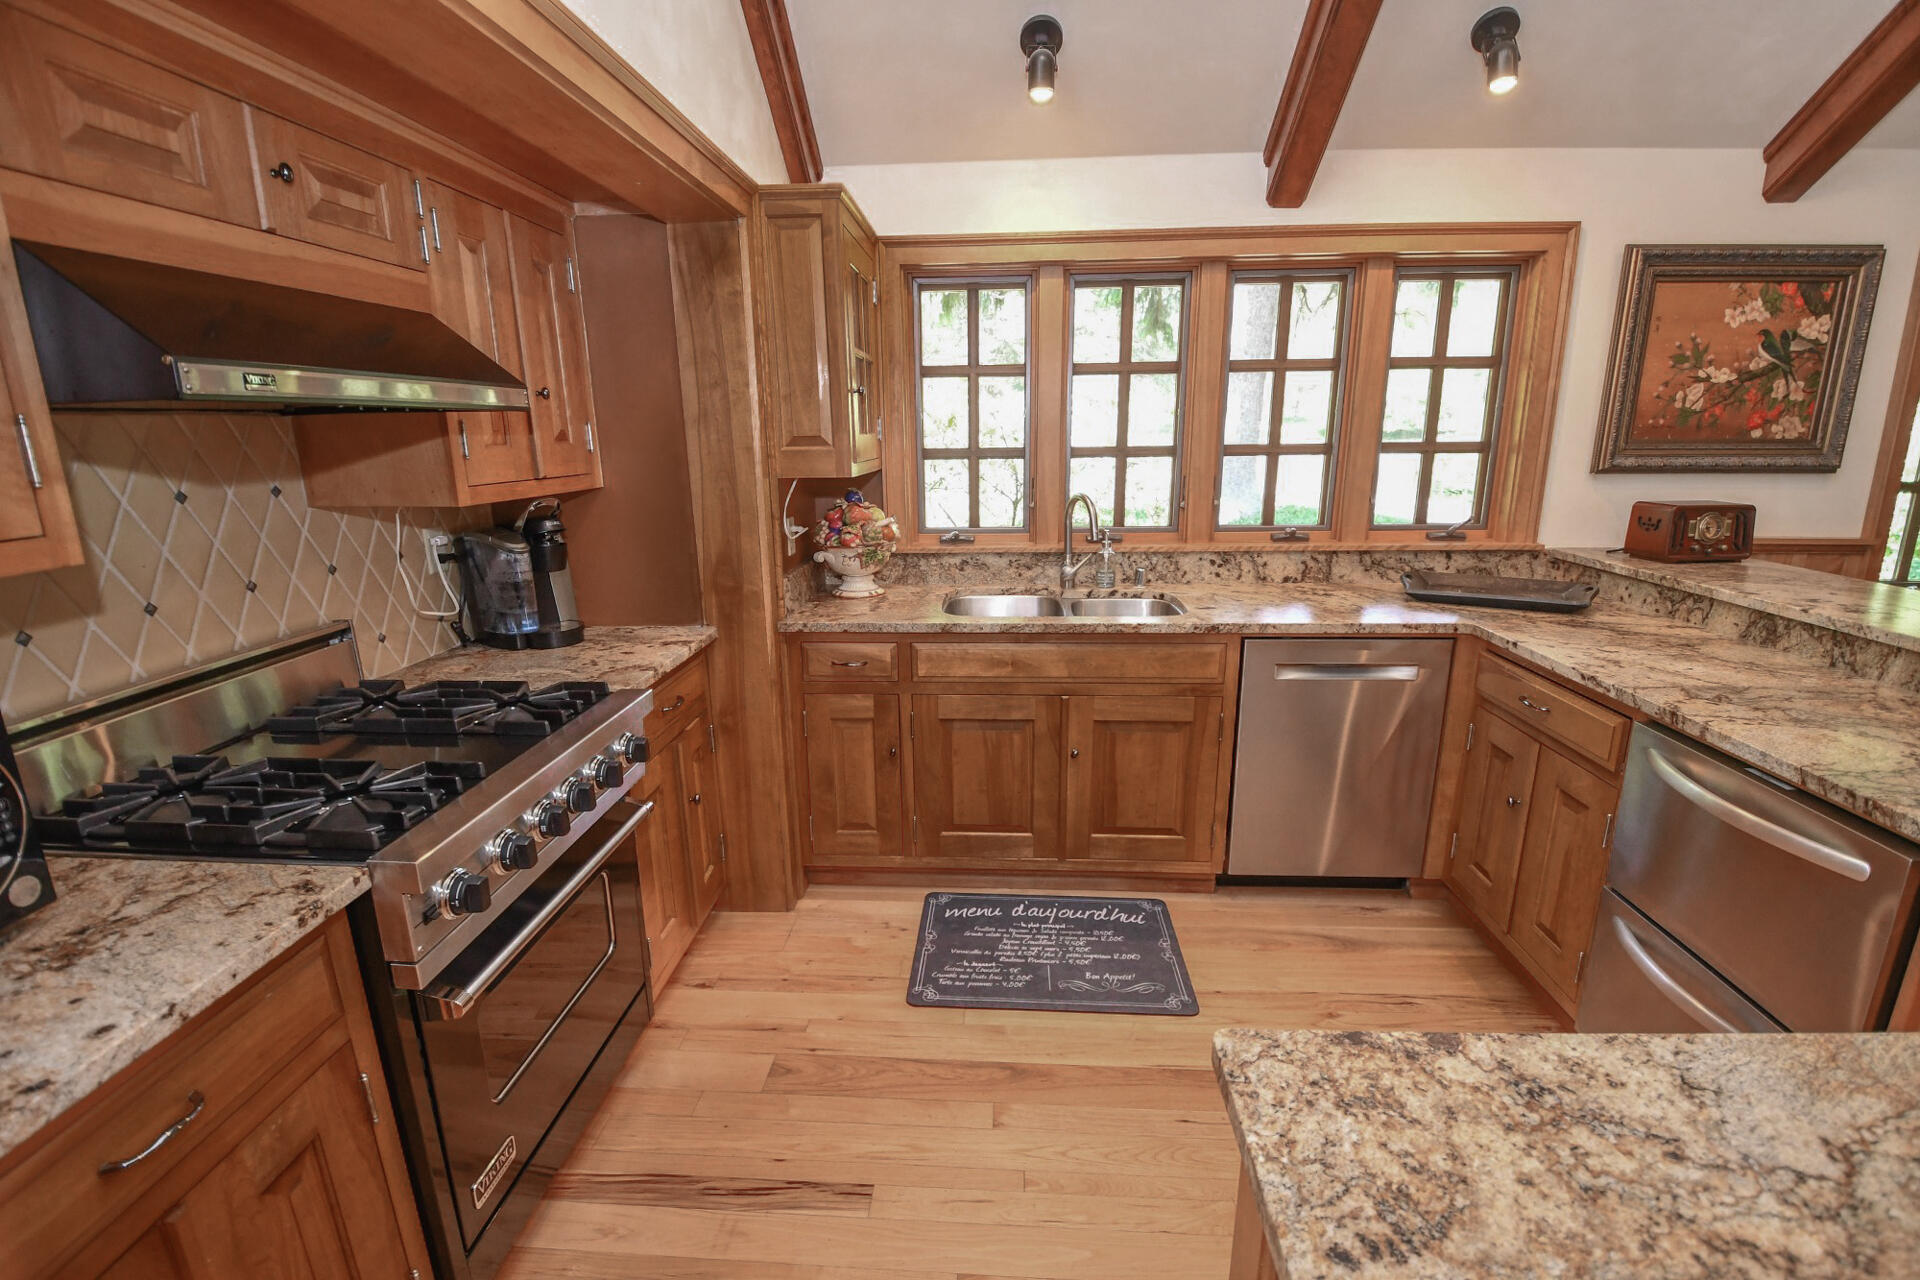 7141 State Road 83, Chenequa, Wisconsin 53029, 5 Bedrooms Bedrooms, 13 Rooms Rooms,6 BathroomsBathrooms,Single-Family,For Sale,State Road 83,1748171